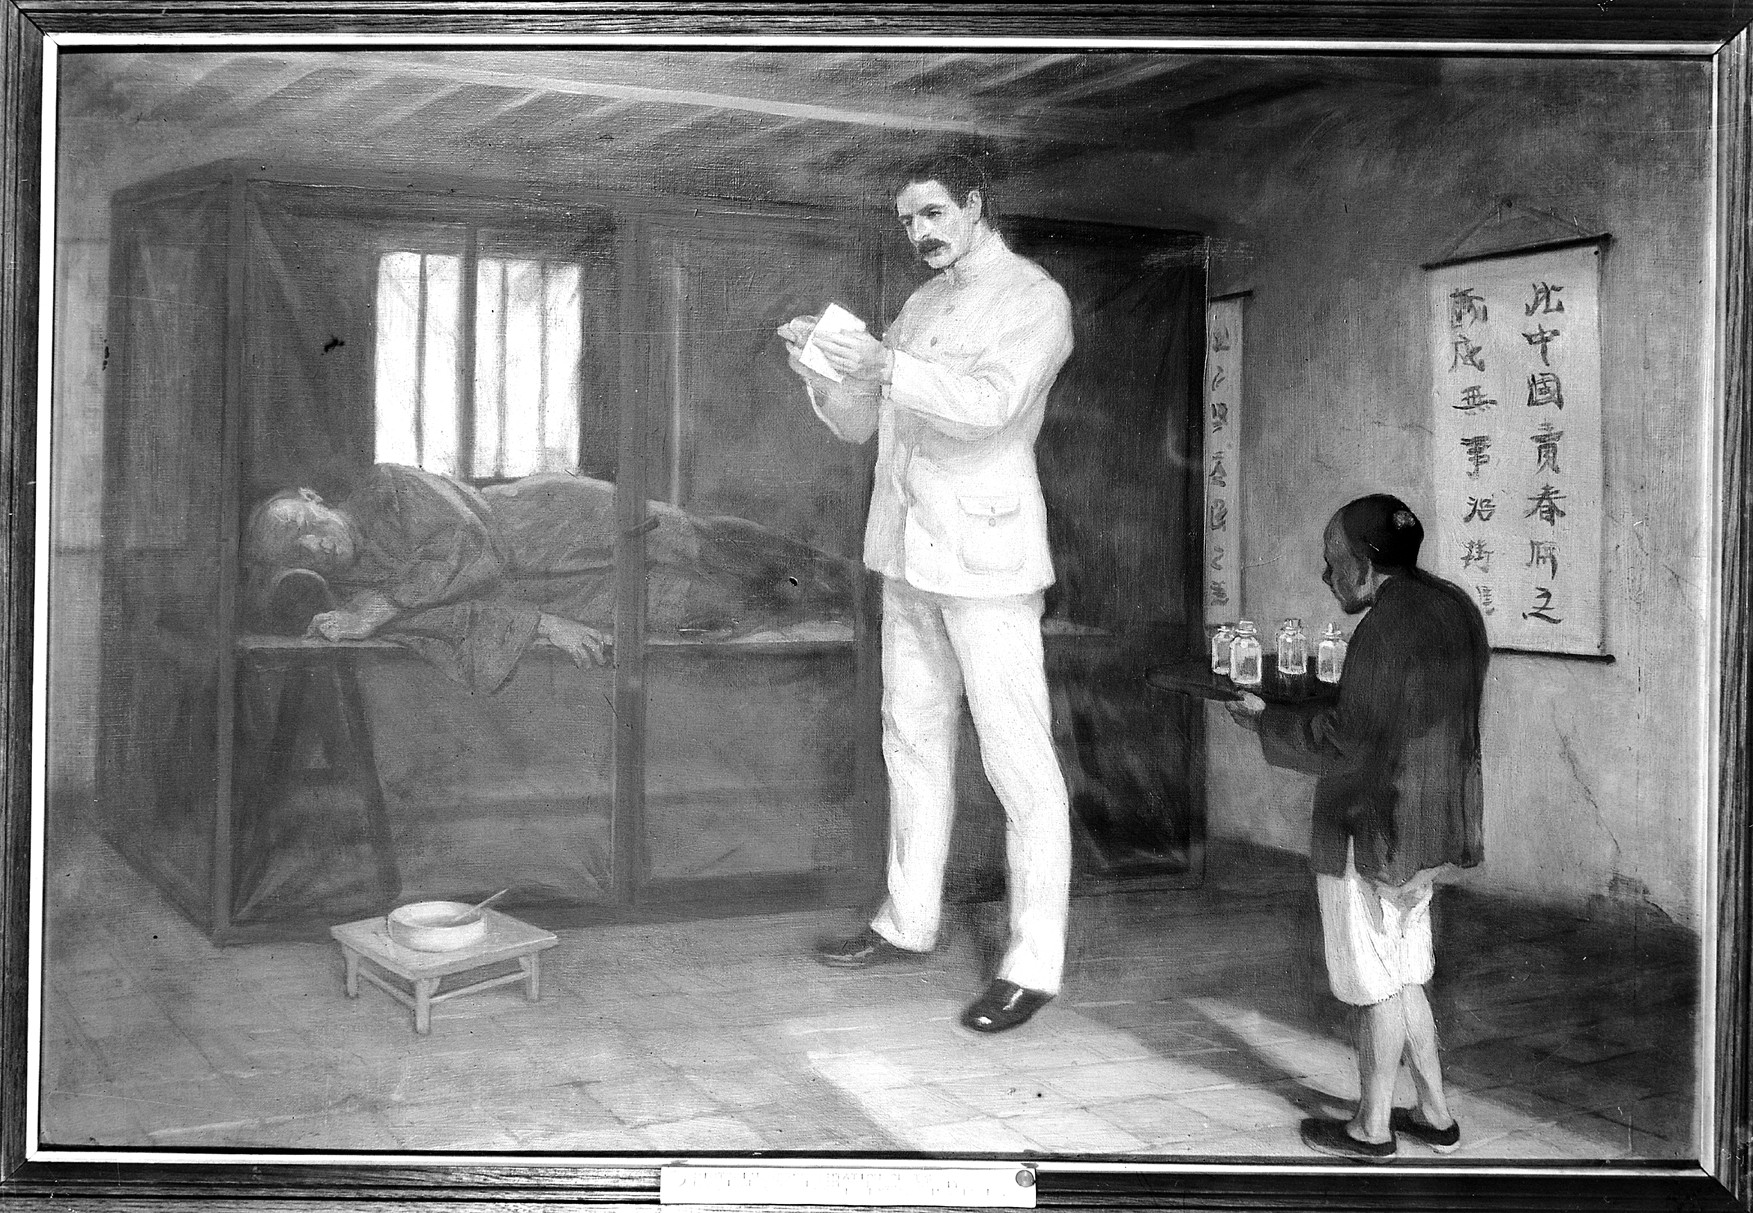 Patrick Manson experimenting with filaria sanguinis-hominis on a human subject in China. Painting by E. Board, ca. 1912. Credit: Wellcome Collection. CC BY